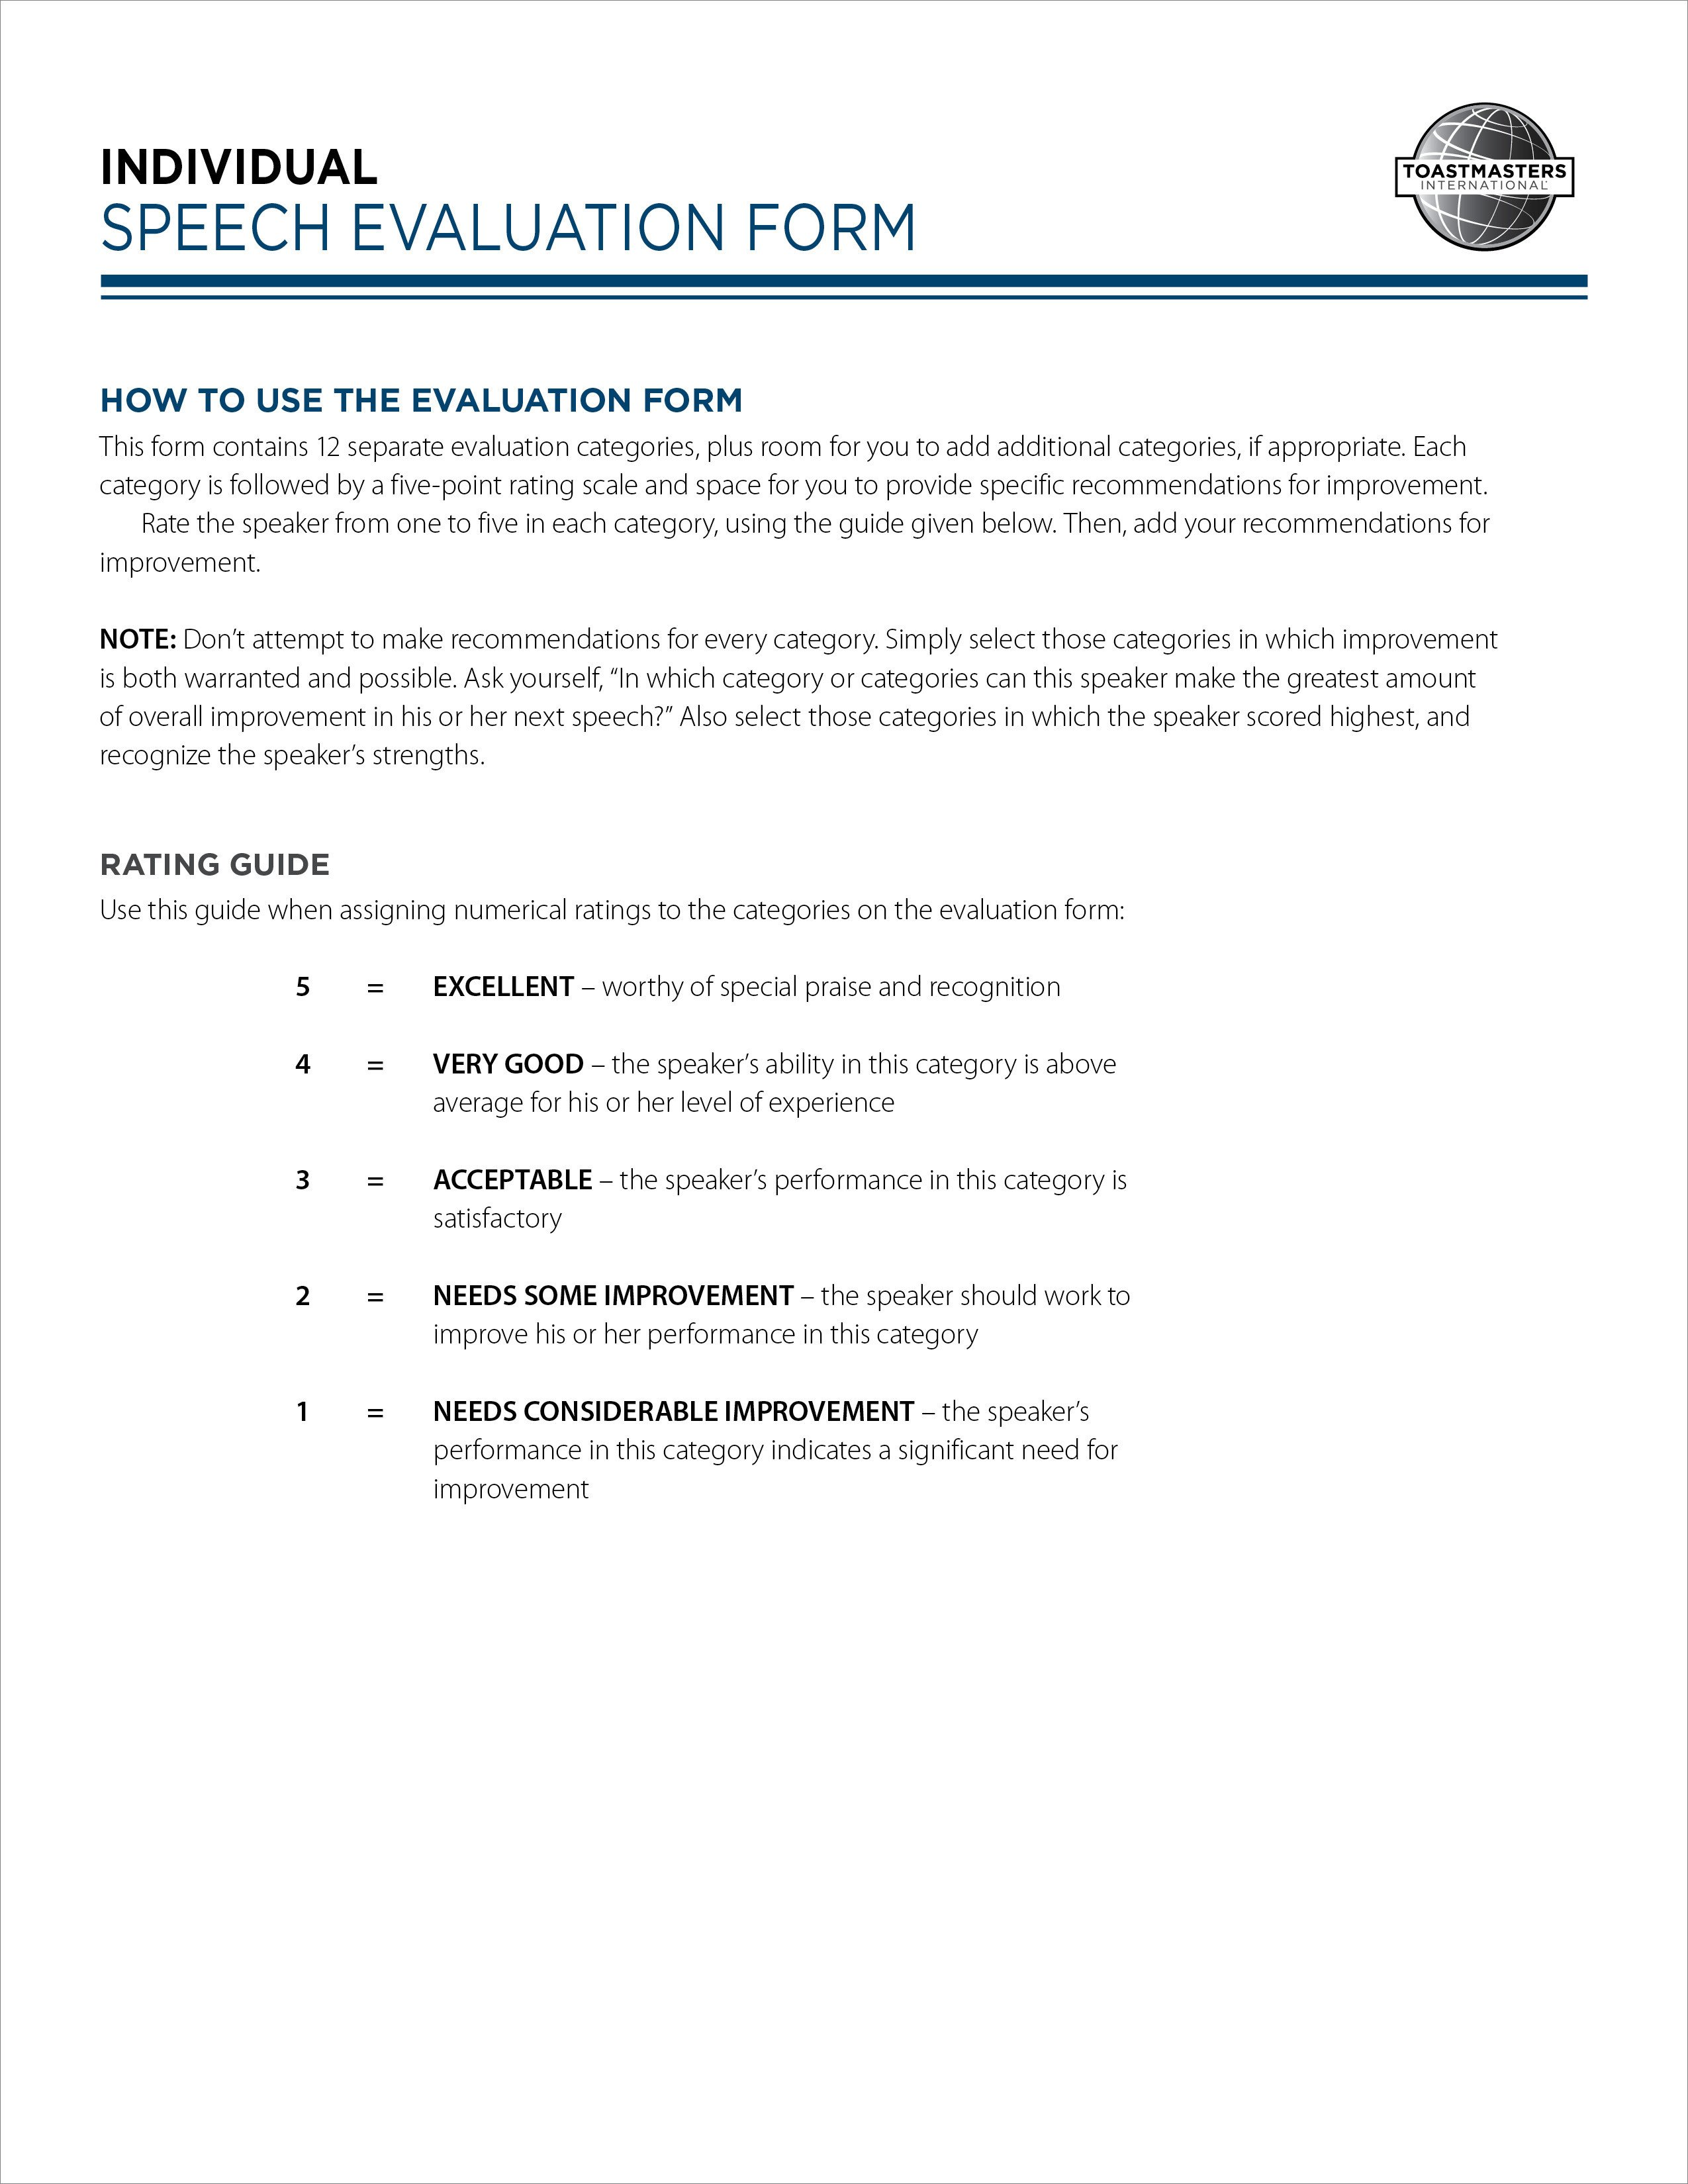 Toastmasters Speech Evaluation form Art Of Effective Evaluation Individual Speech form Pad Of 30